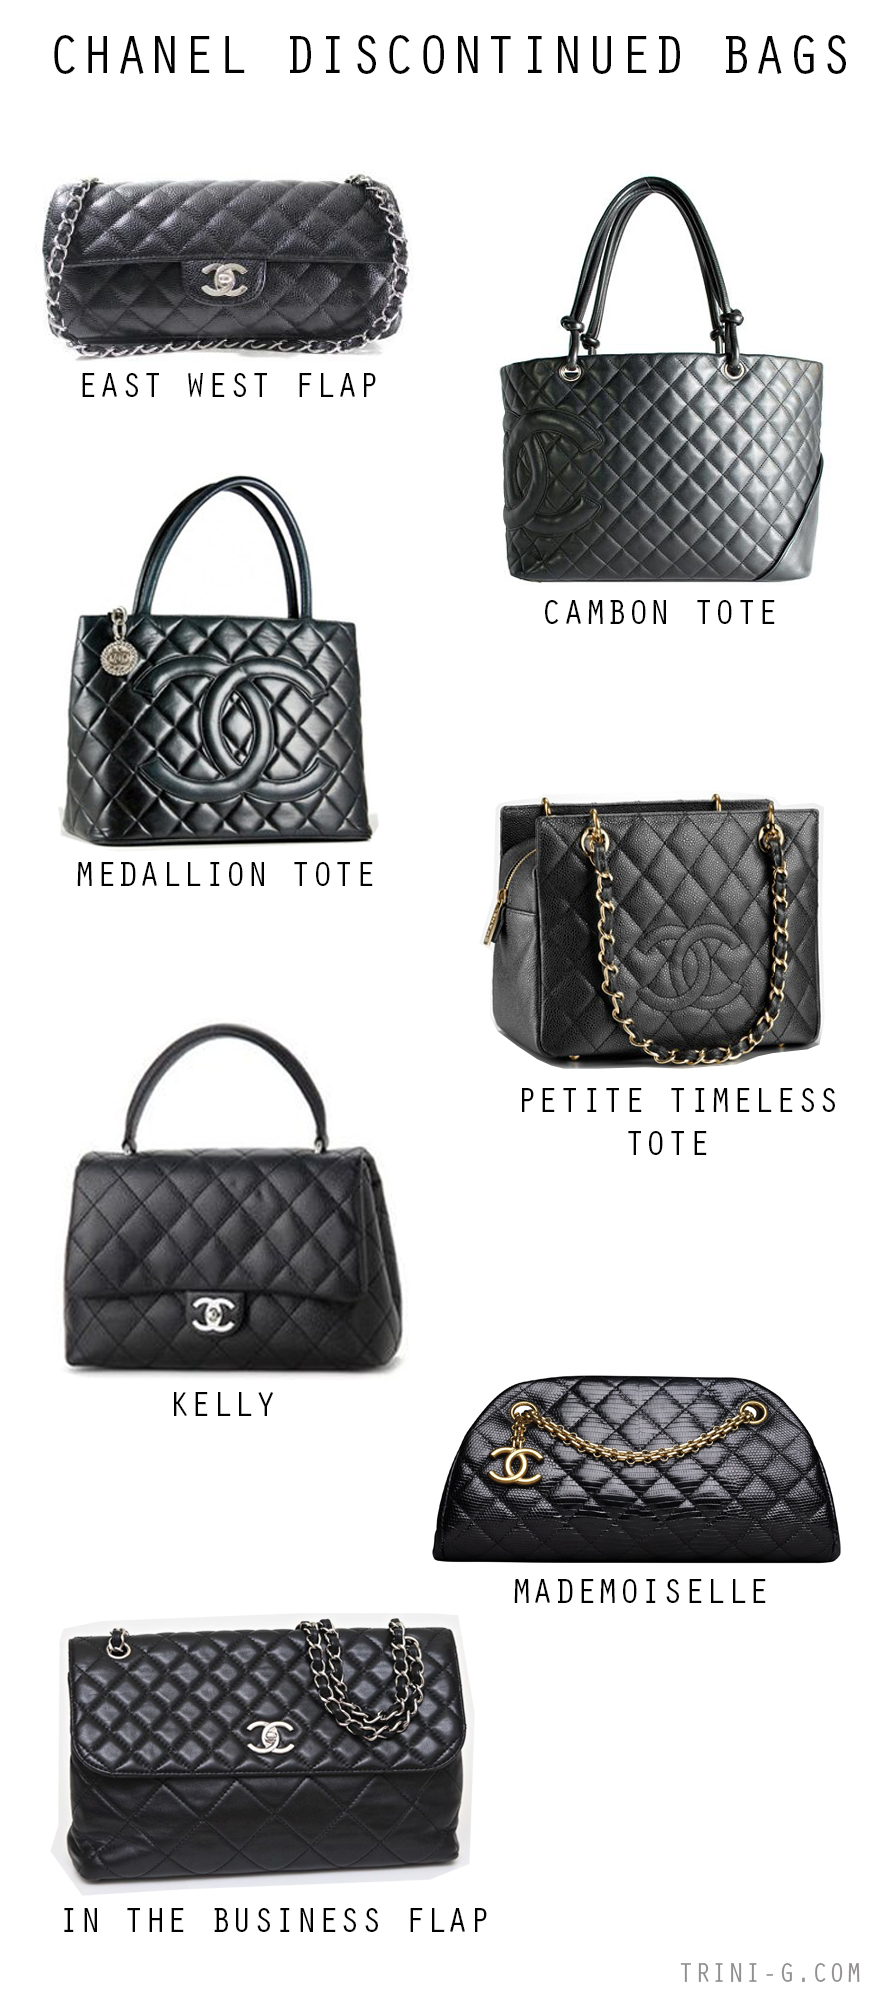 Trini blog| Chanel discontinued bags